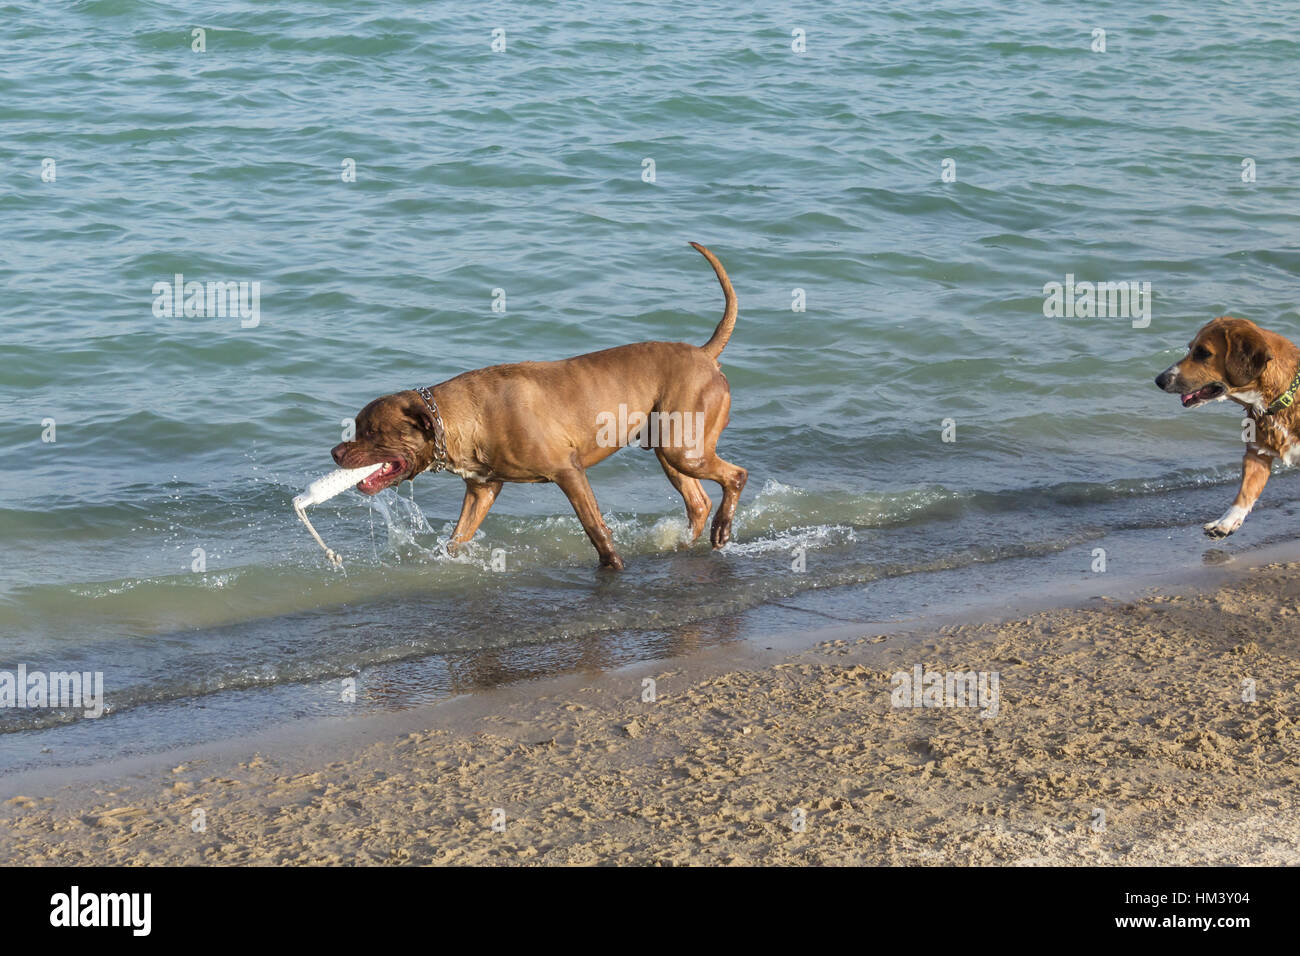 Bullmastiff pit bullterrier mix carrying a white fetch toy as a beagle Welsh corgi mix enters this dog park beach - Stock Image